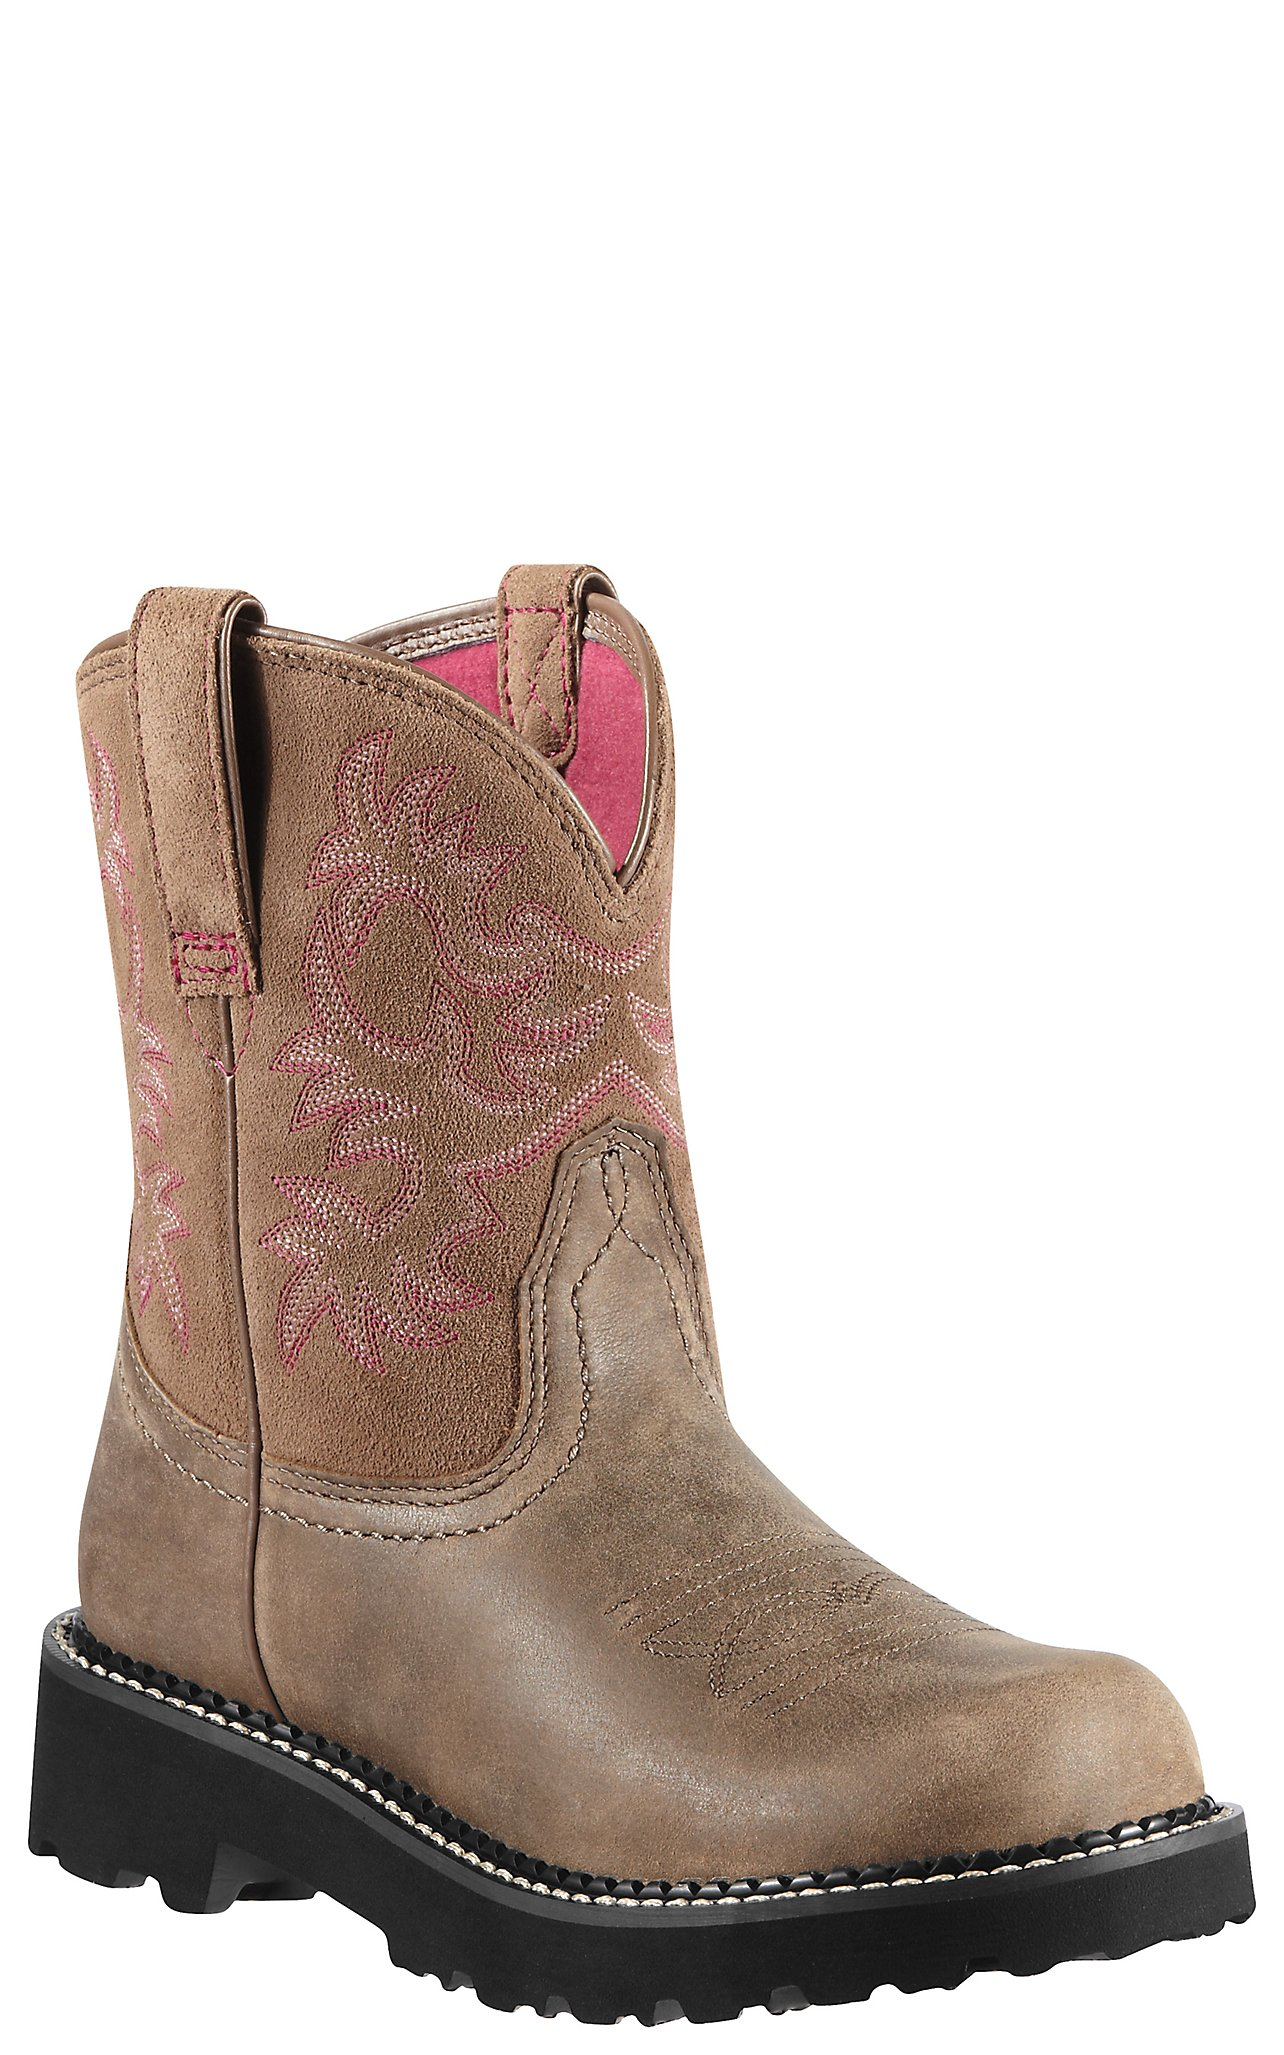 Ariat Fatbaby Ladies Brown Bomber Boots | Cavender's